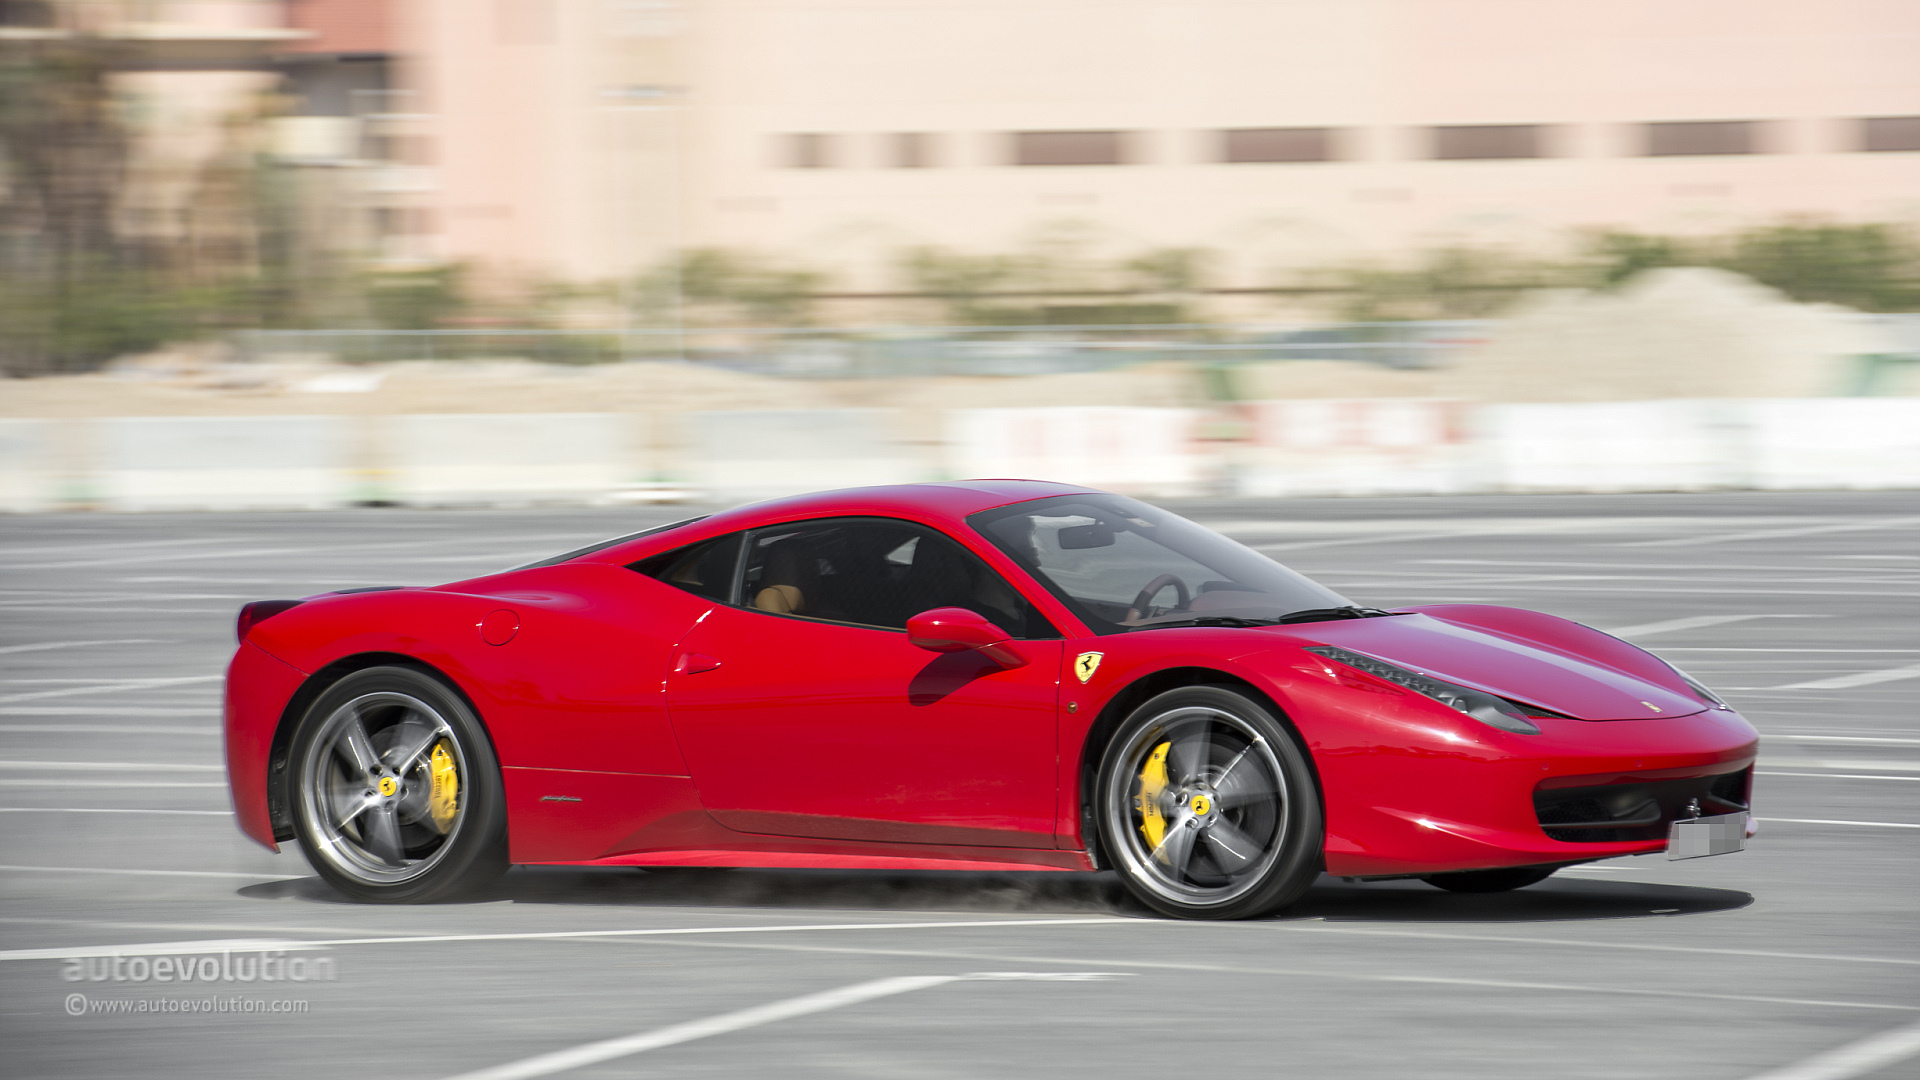 ferrari 458 italia review autoevolution. Black Bedroom Furniture Sets. Home Design Ideas